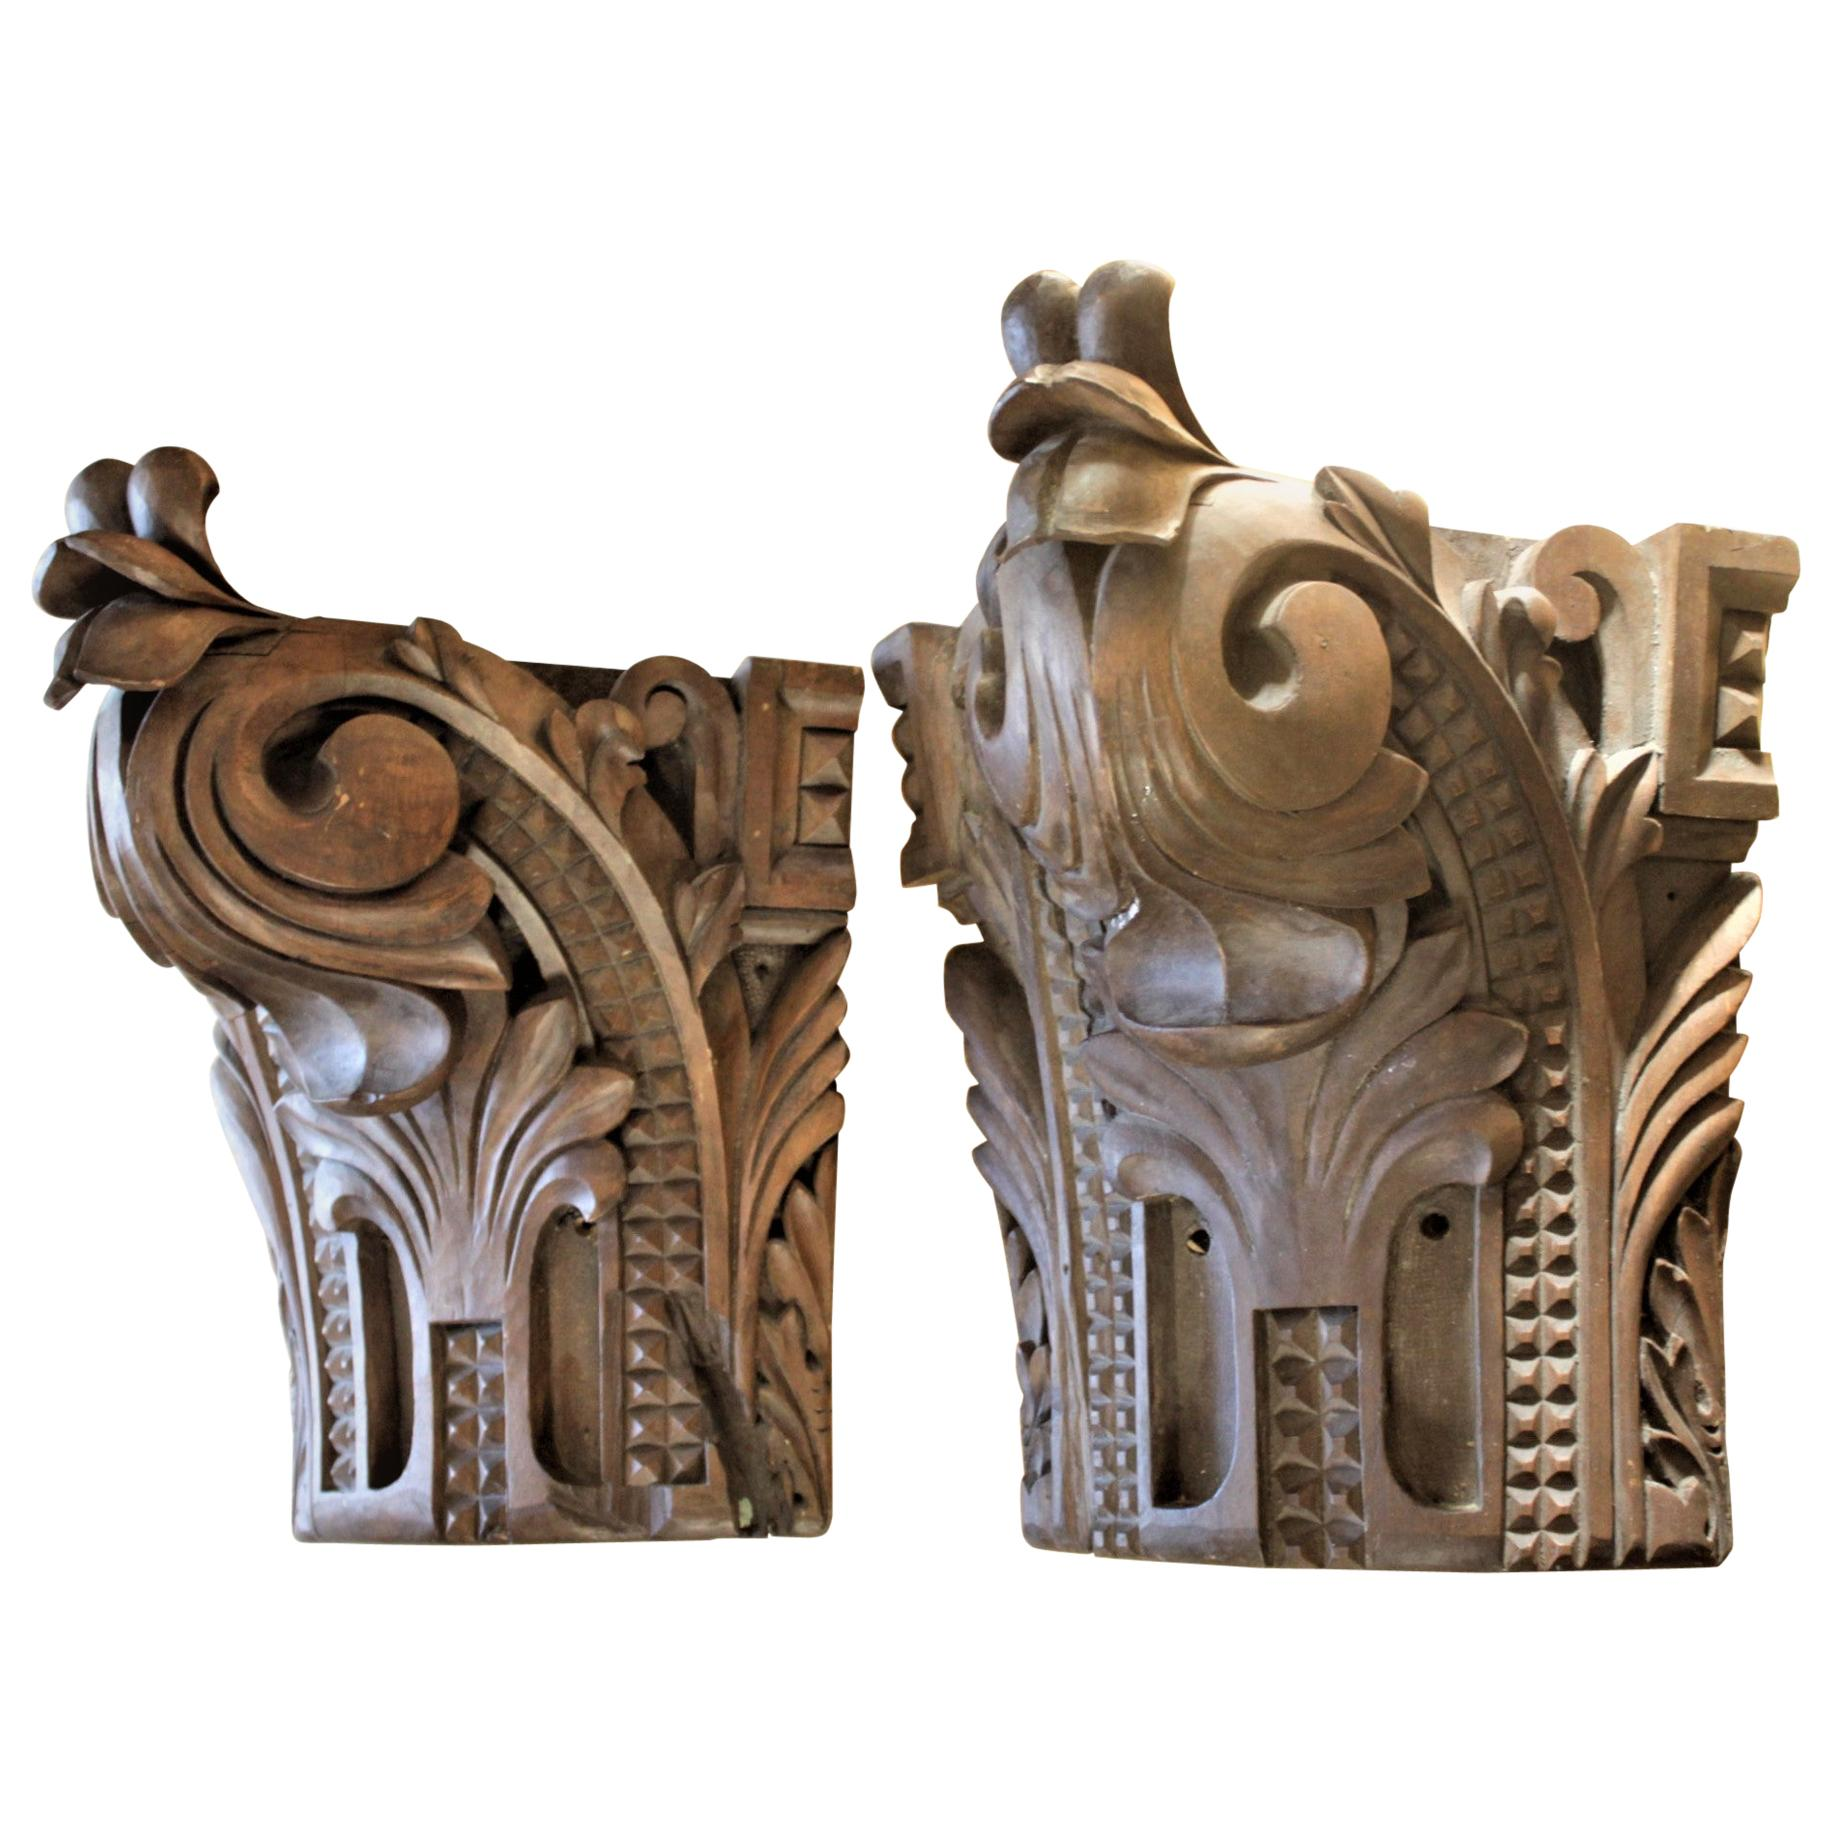 Antique Salvaged Carved Wooden Architectural Wall Brackets, Corbels or Shelves